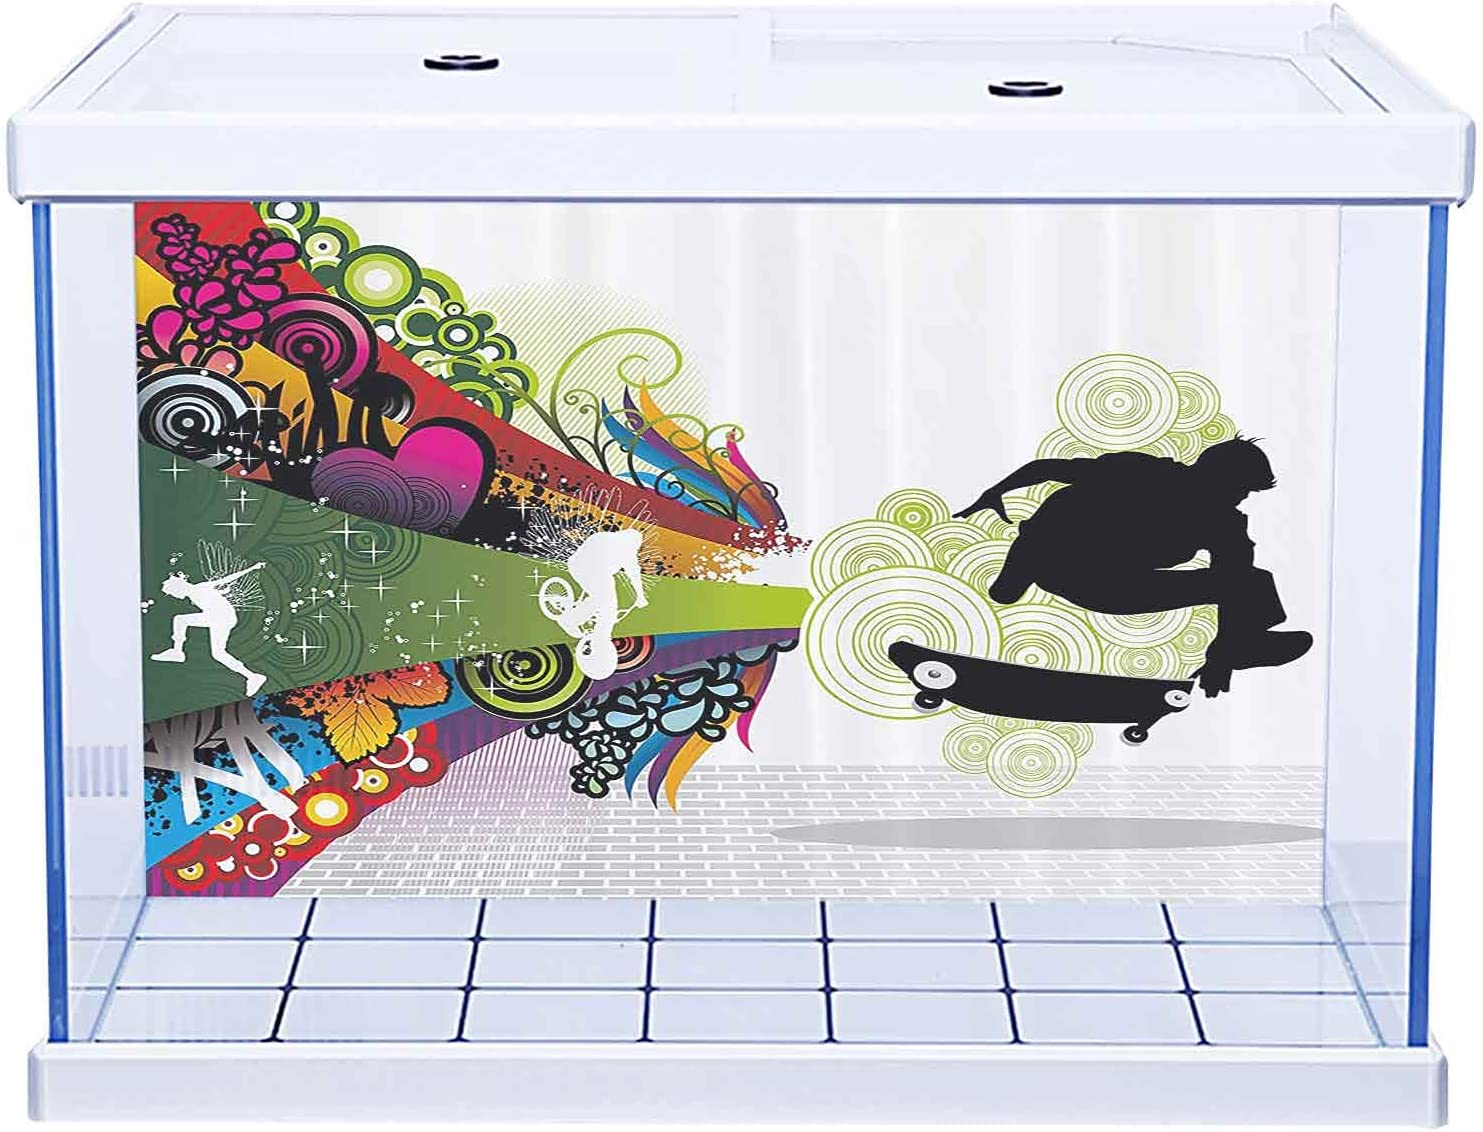 Aquarium Free shipping on posting reviews Background Many popular brands Sticker Teenager Decor Young Vivid Theme Des